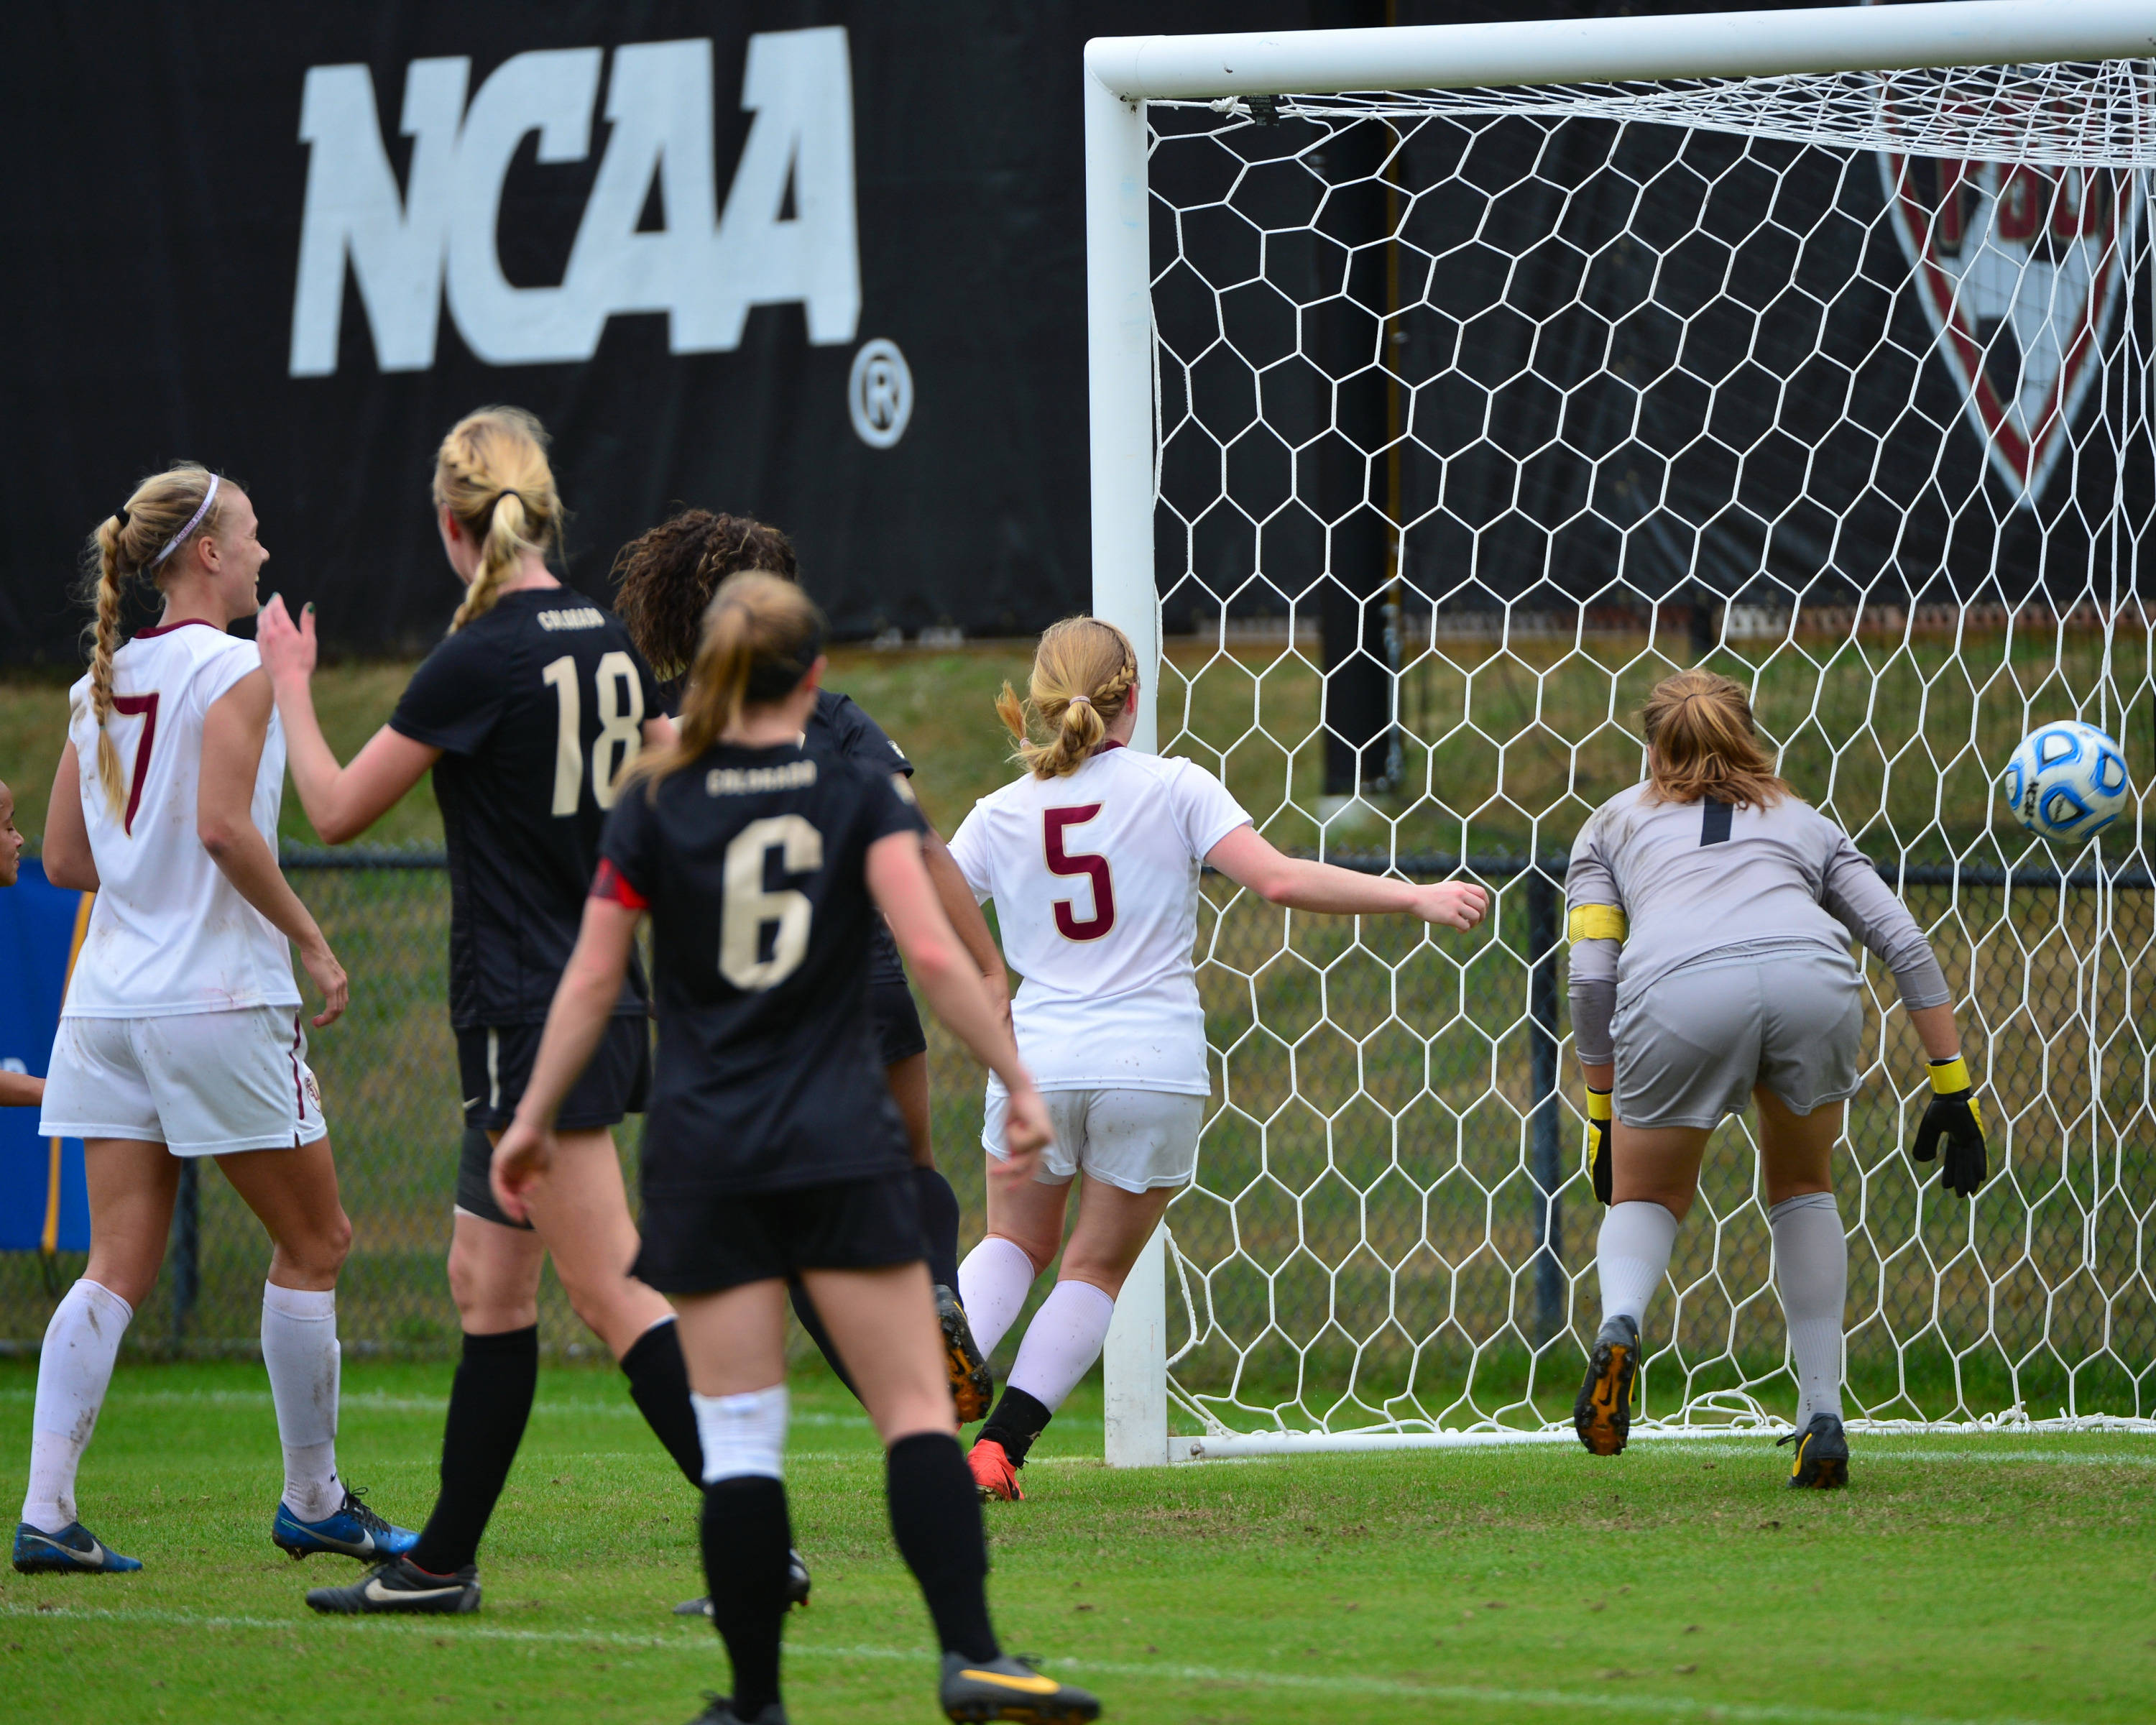 Dagny Brnyjarsdottir scores her second goal of the afternoon.